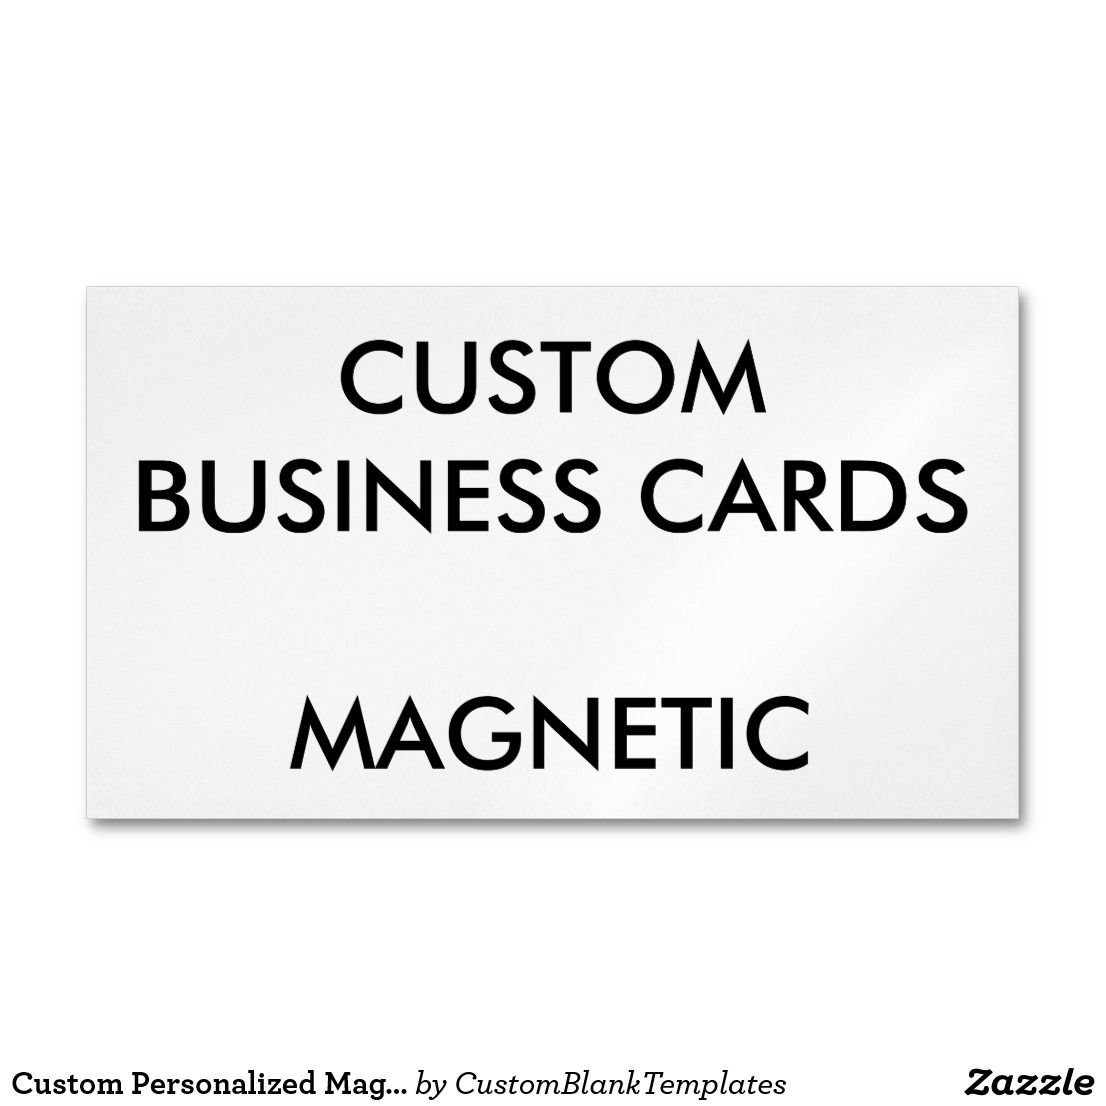 Custom Personalized Magnetic Business Cards Blank | Custom ...